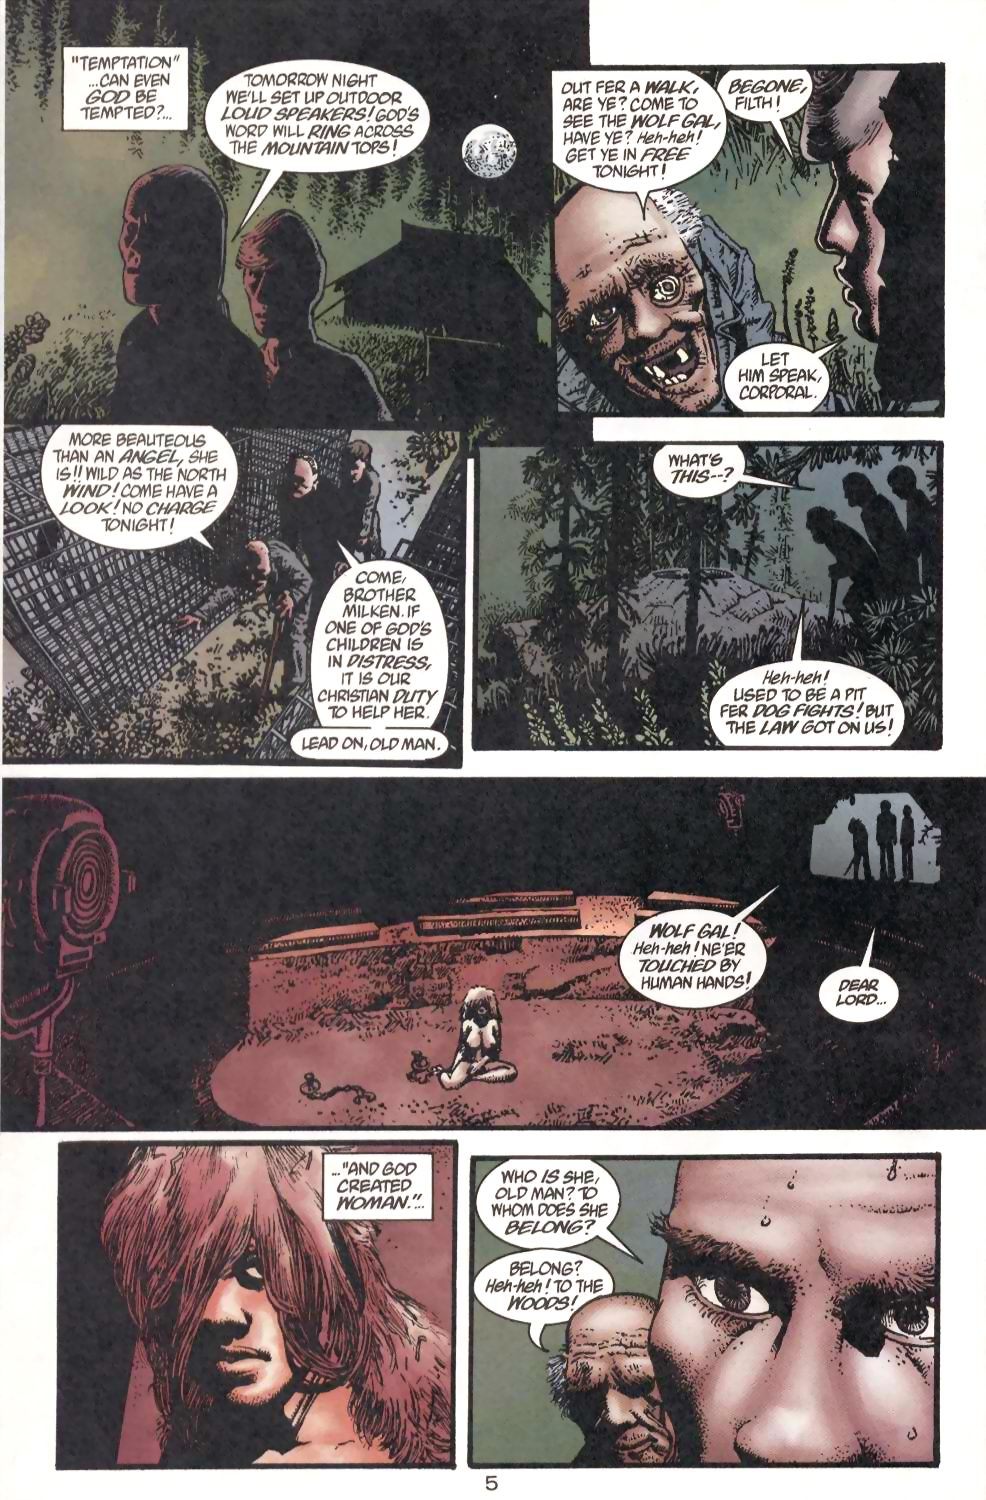 Flinch (1999) #1 pg.20, lettered by Clem Robins.